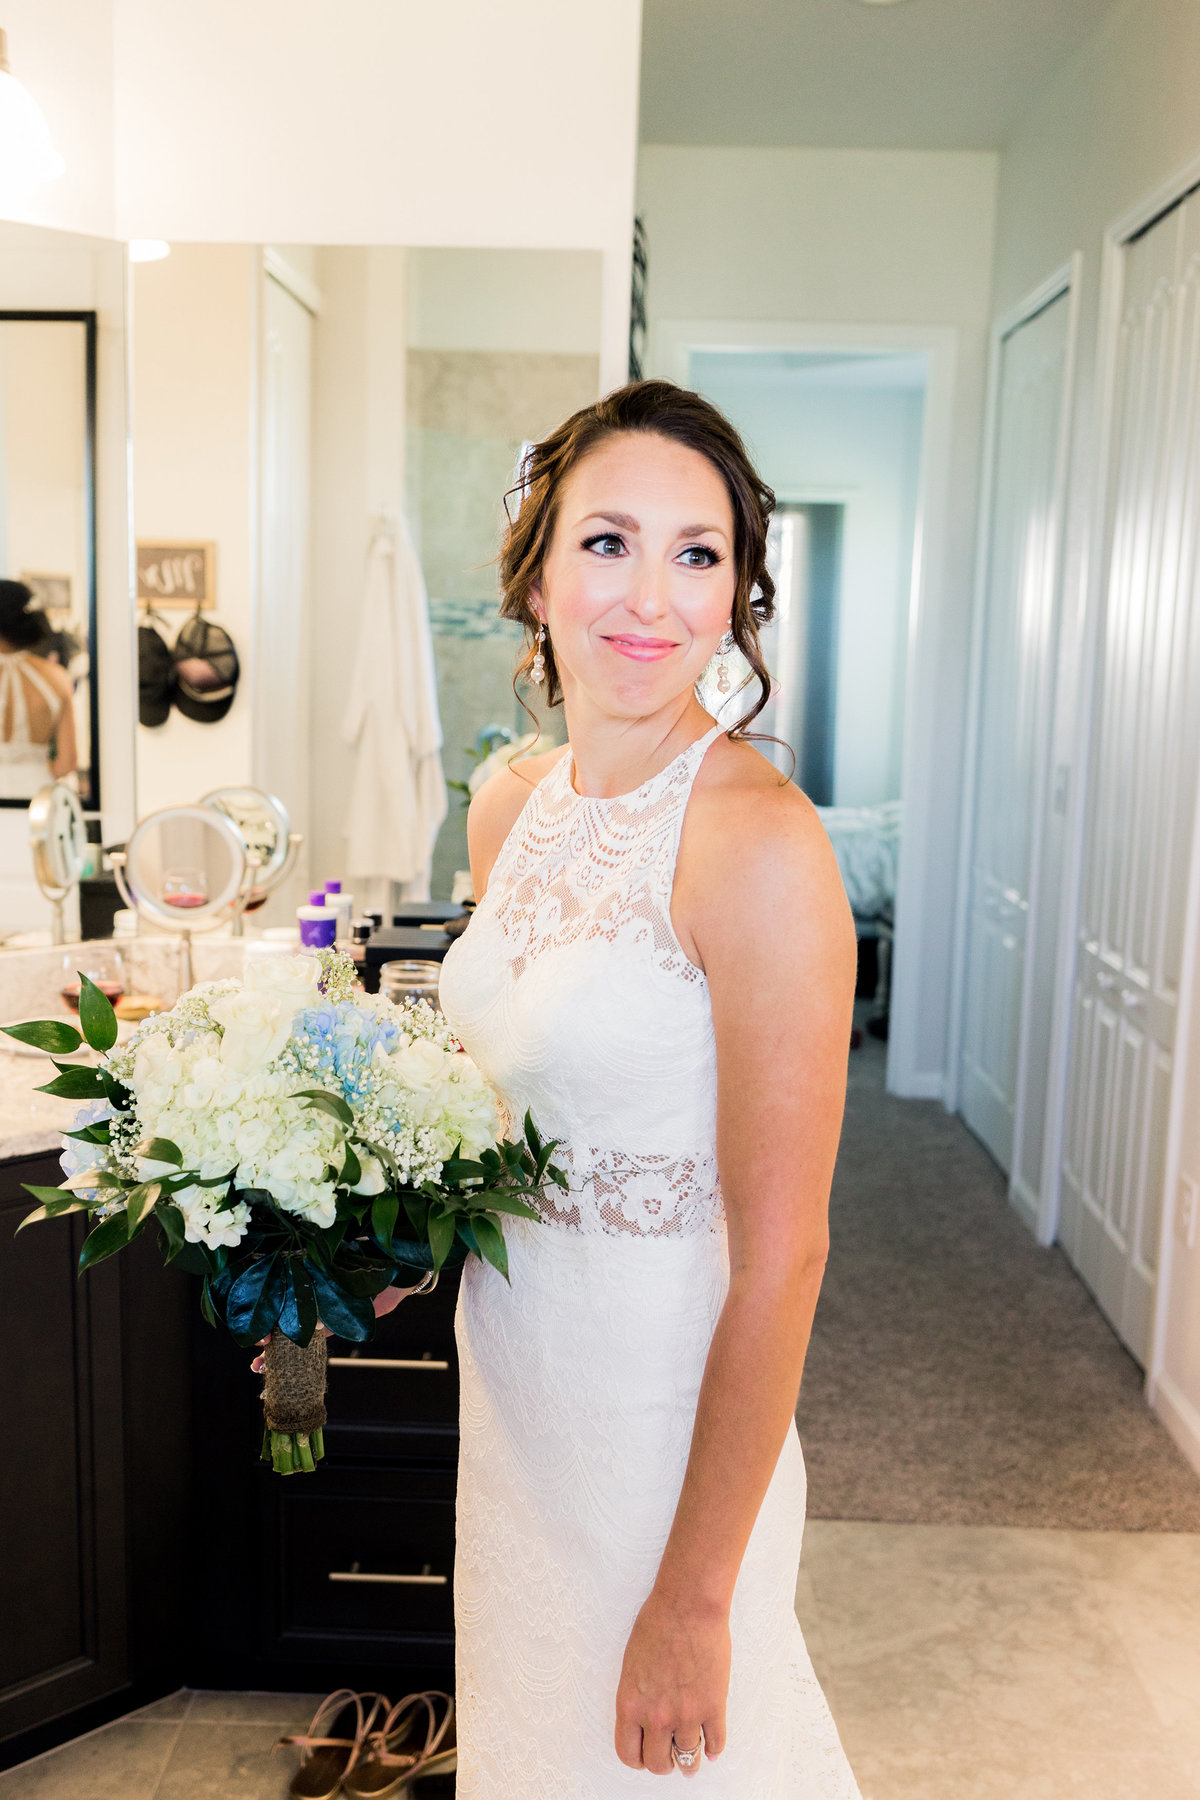 kimberly-hoyle-photography-kelly-david-grant-florida-wedding-40